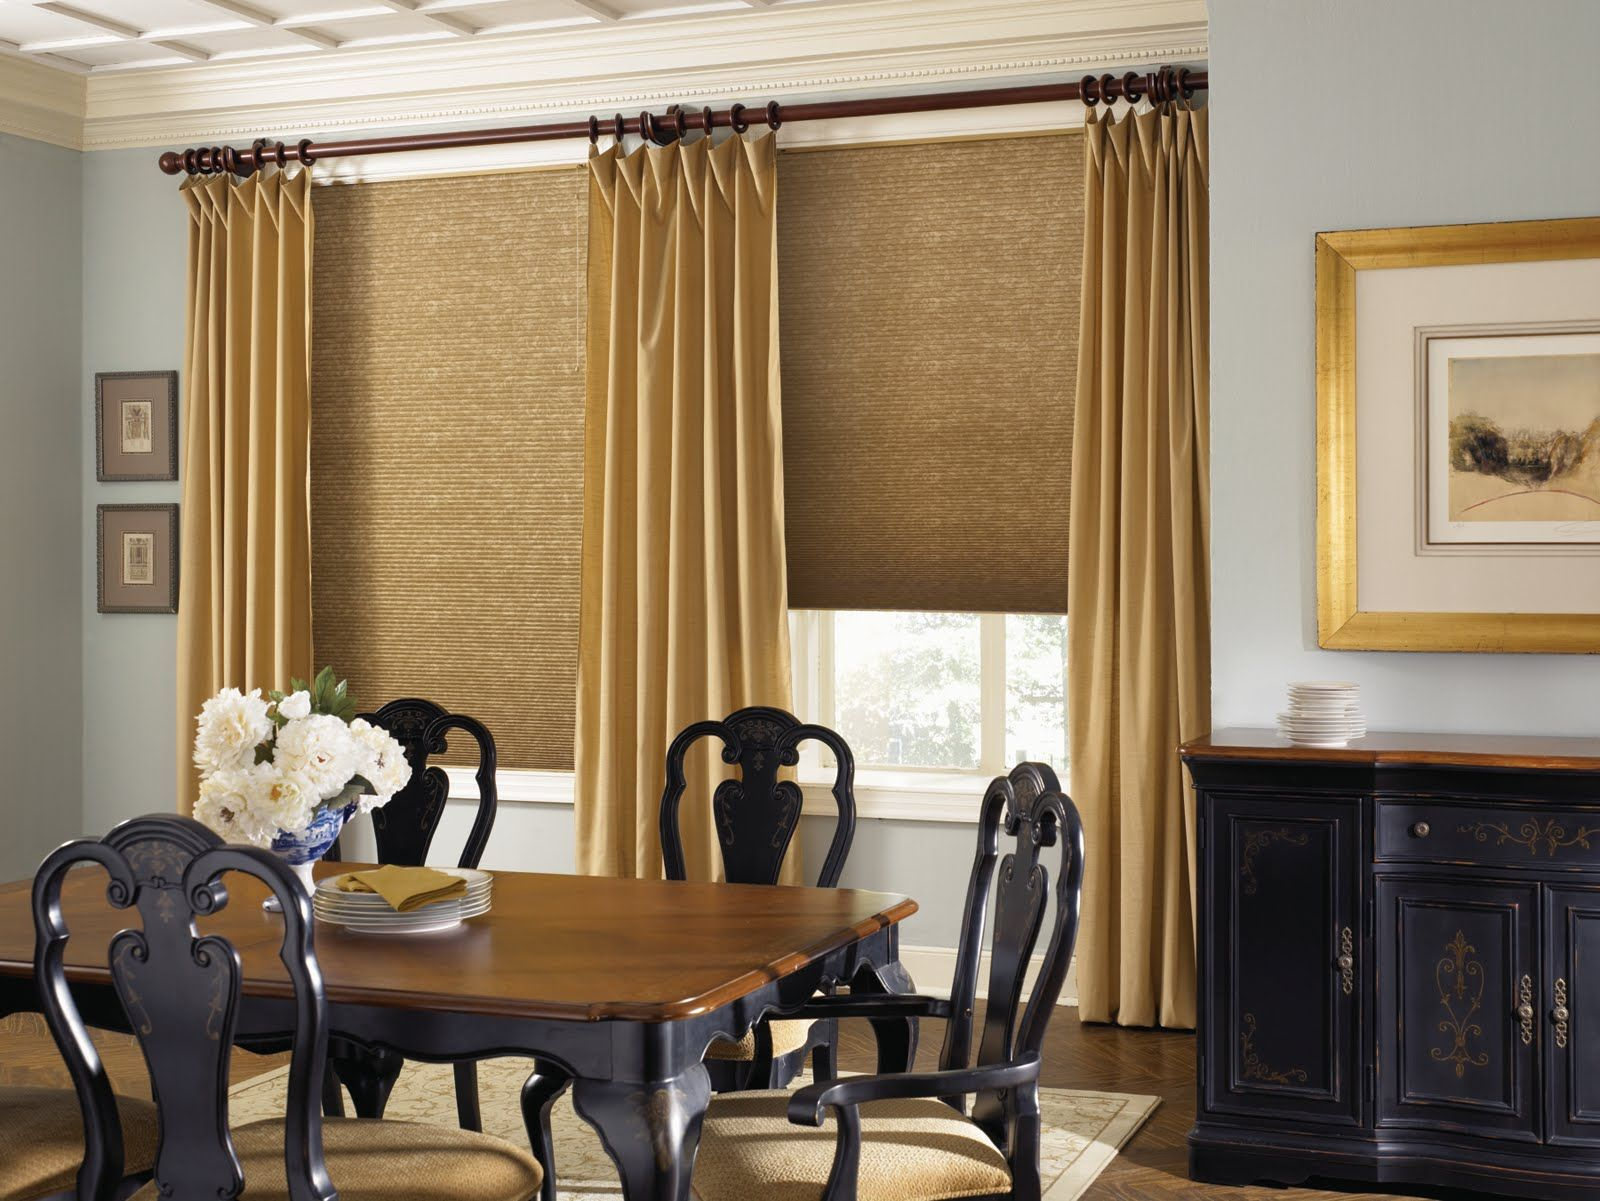 Interior Honeycomb Window Shades With Gold Accent Curtains